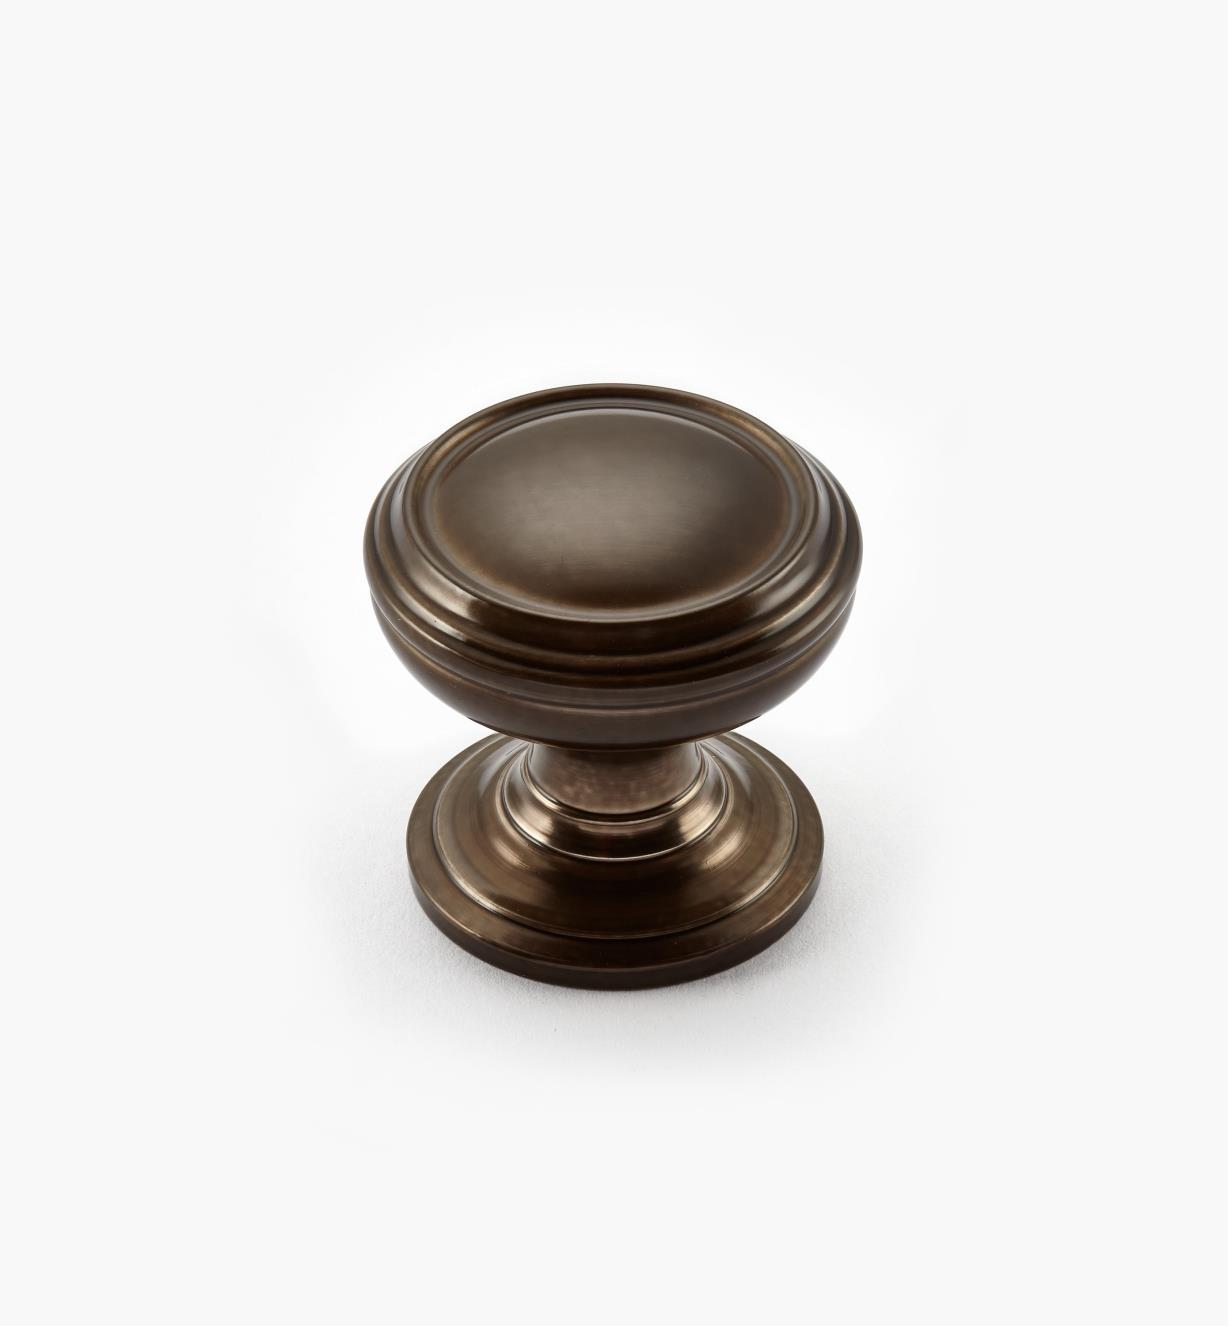 "02A2222 - Revitalize Caramel Bronze 1 1/4"" Plain Round Knob, each"